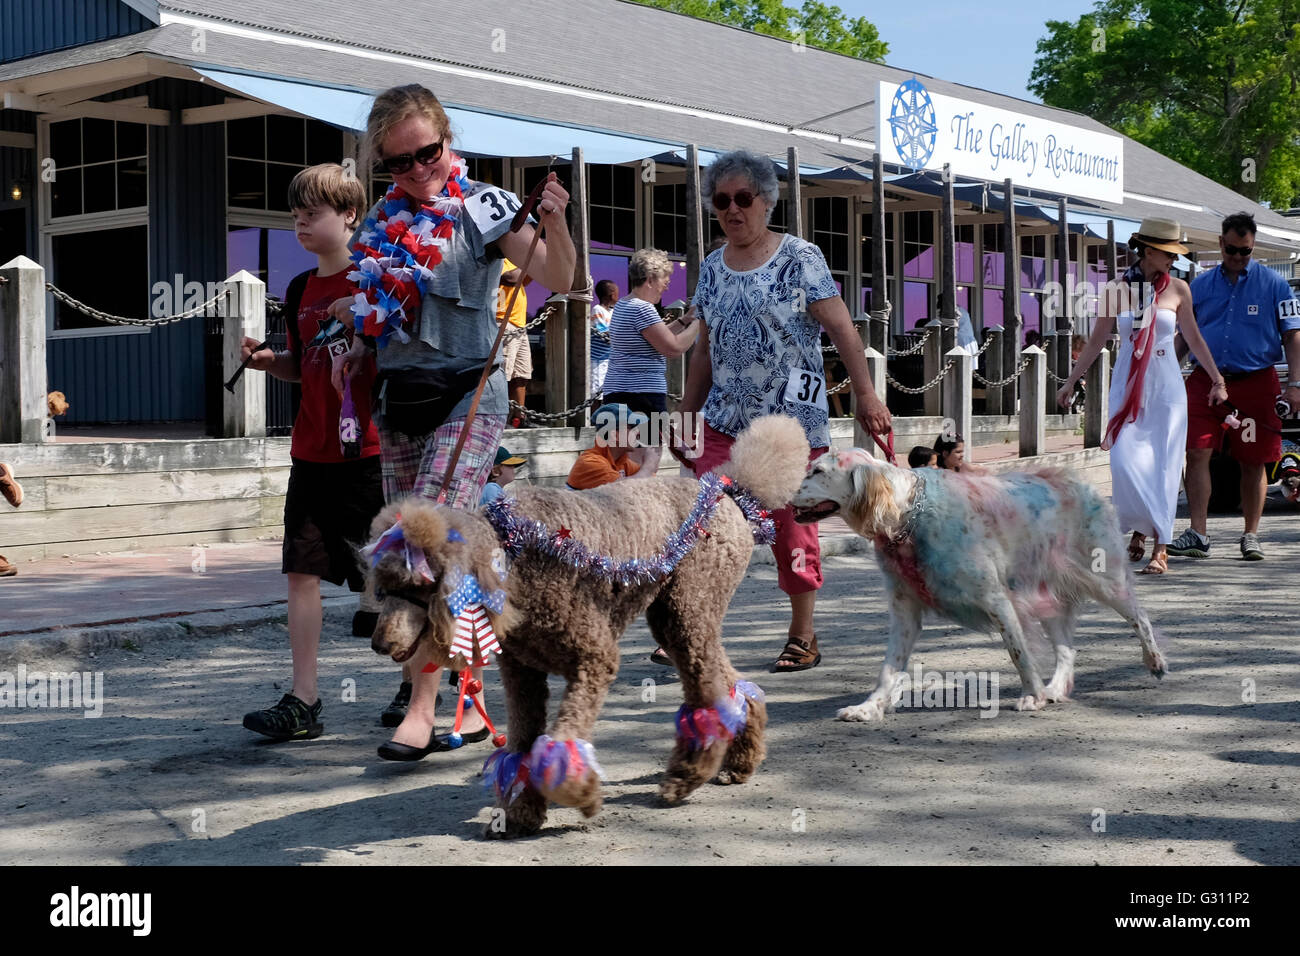 Participants in Costumed Dog Parade in Mystic Seaport, Connecticut - Stock Image